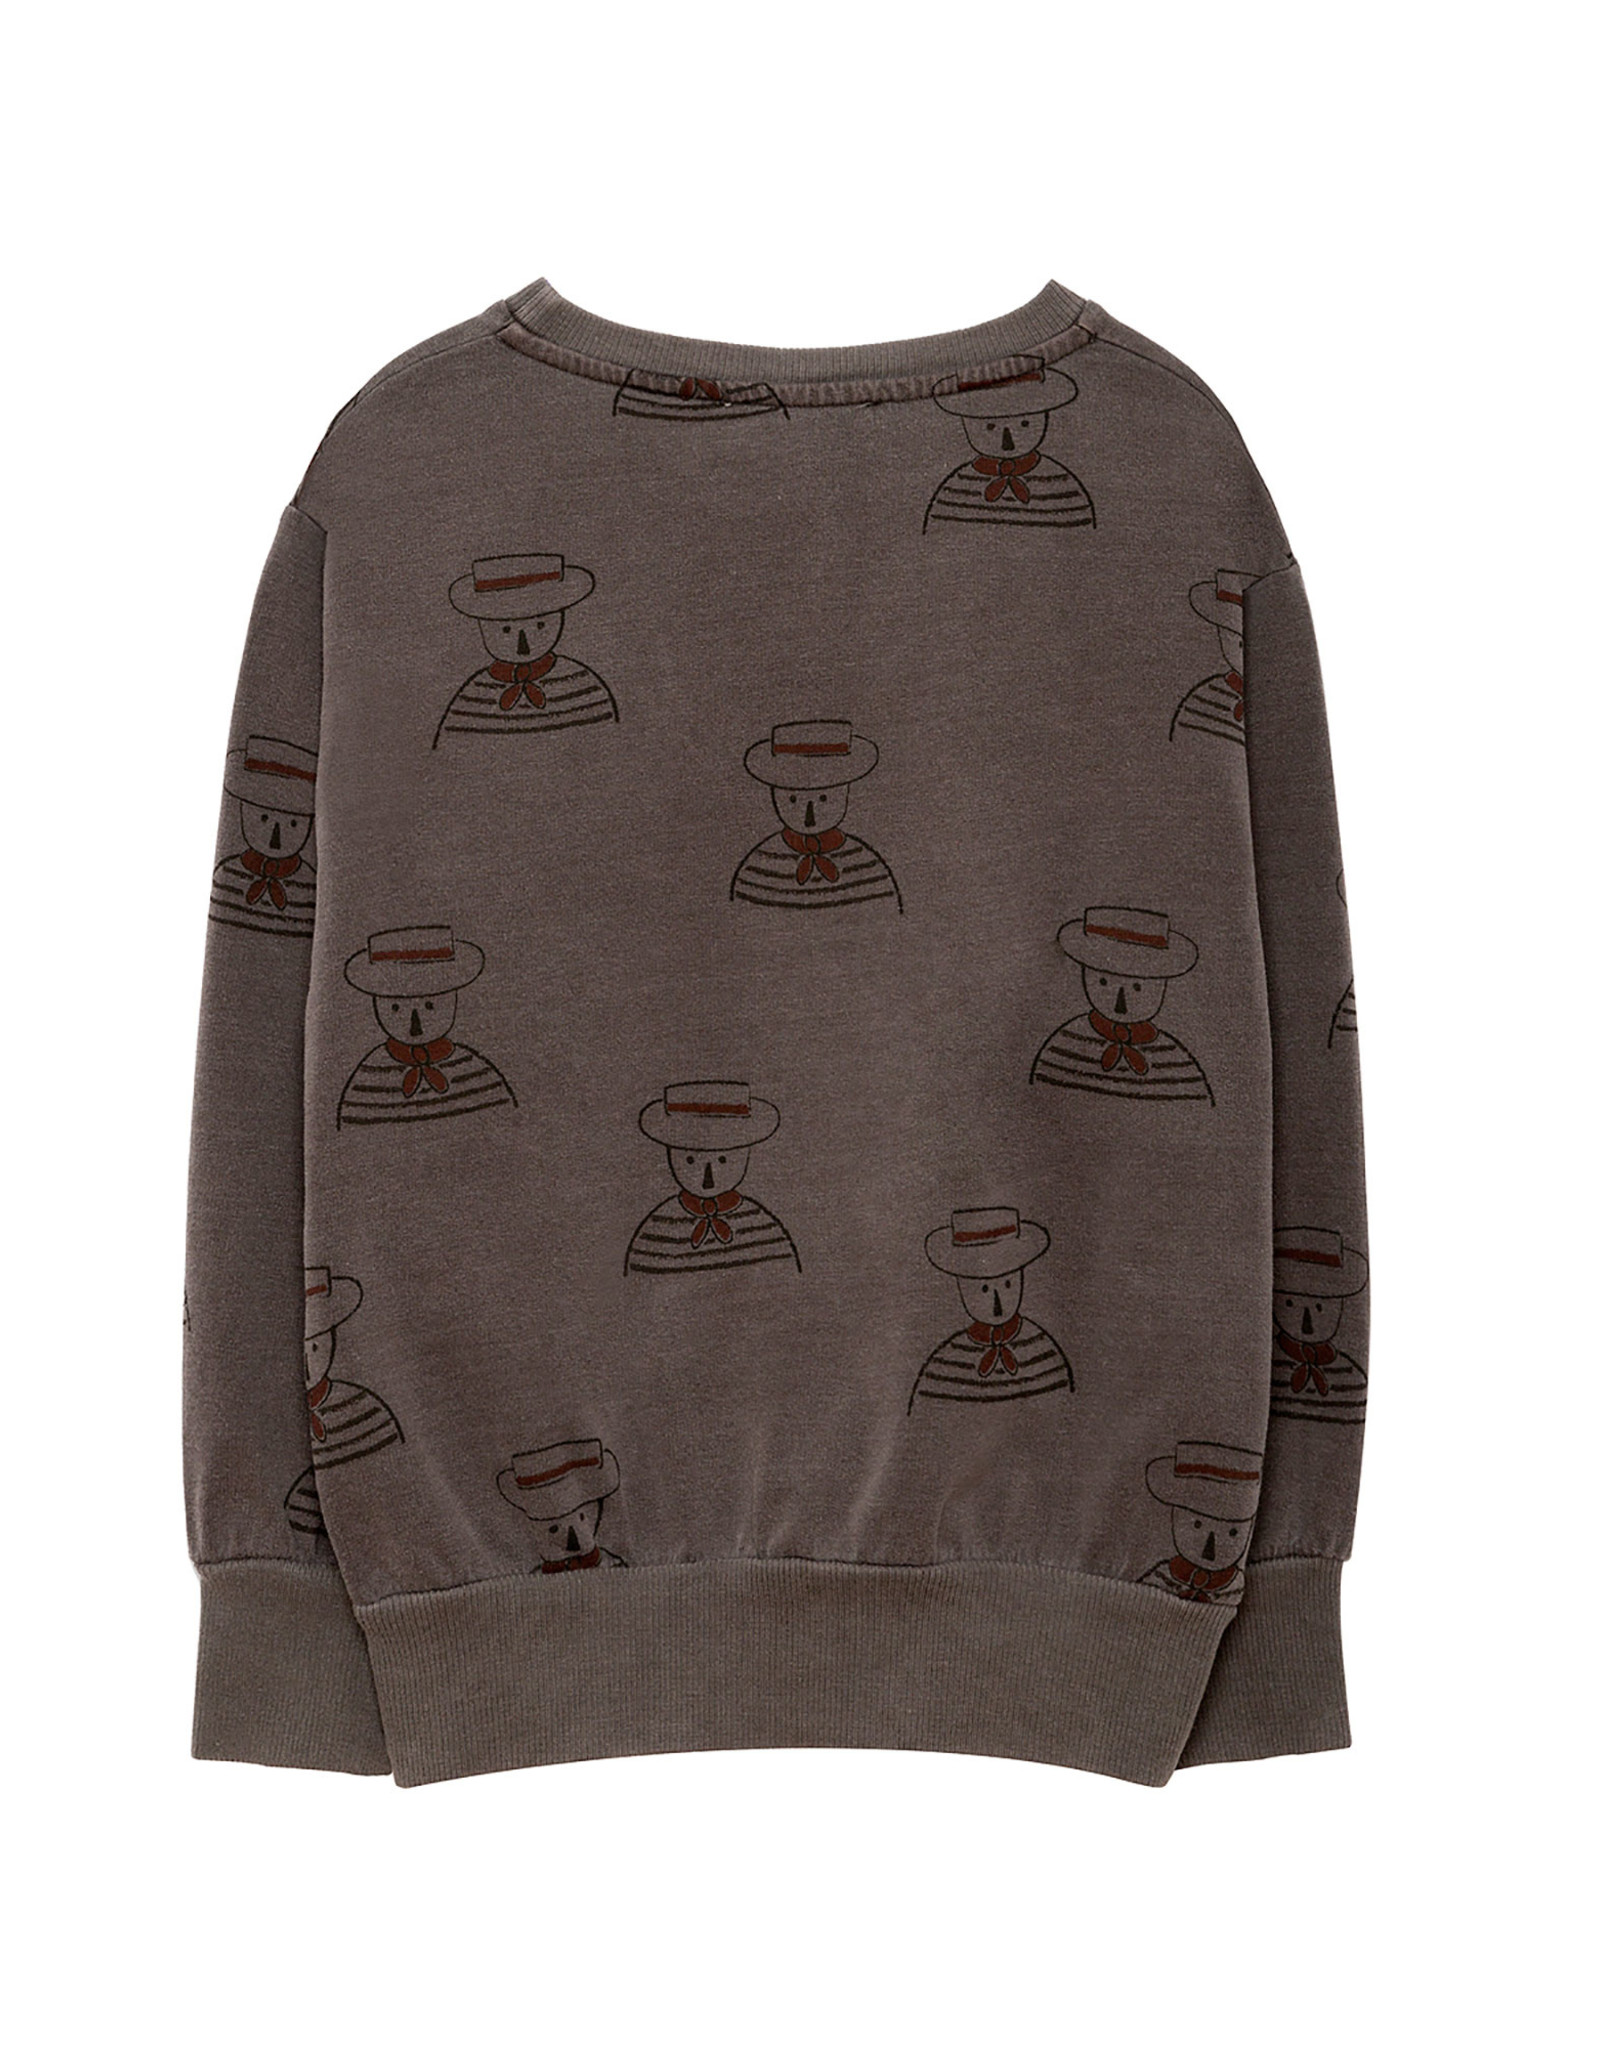 Weekend House Kids Gondolier sweatshirt